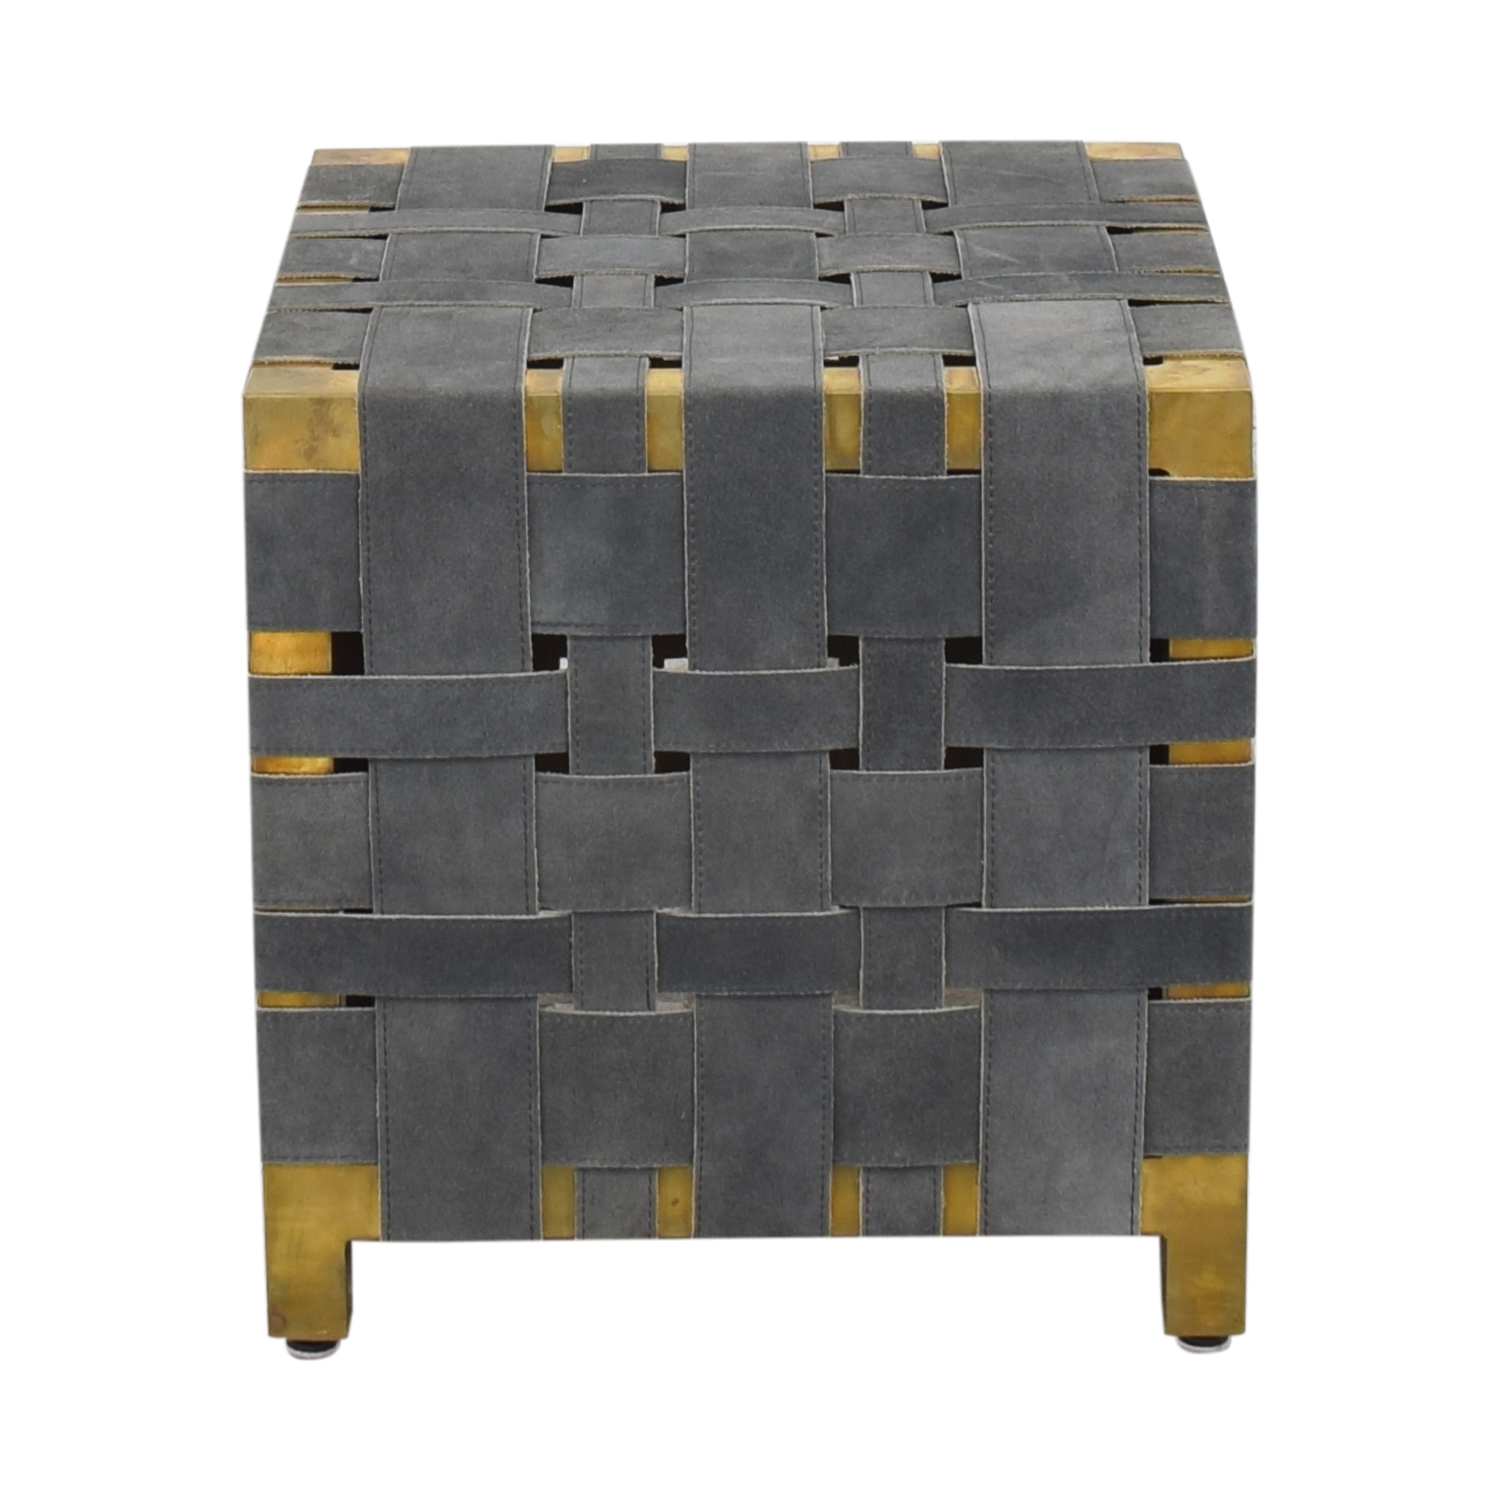 Arteriors Arteriors Ds2001 Stool nj